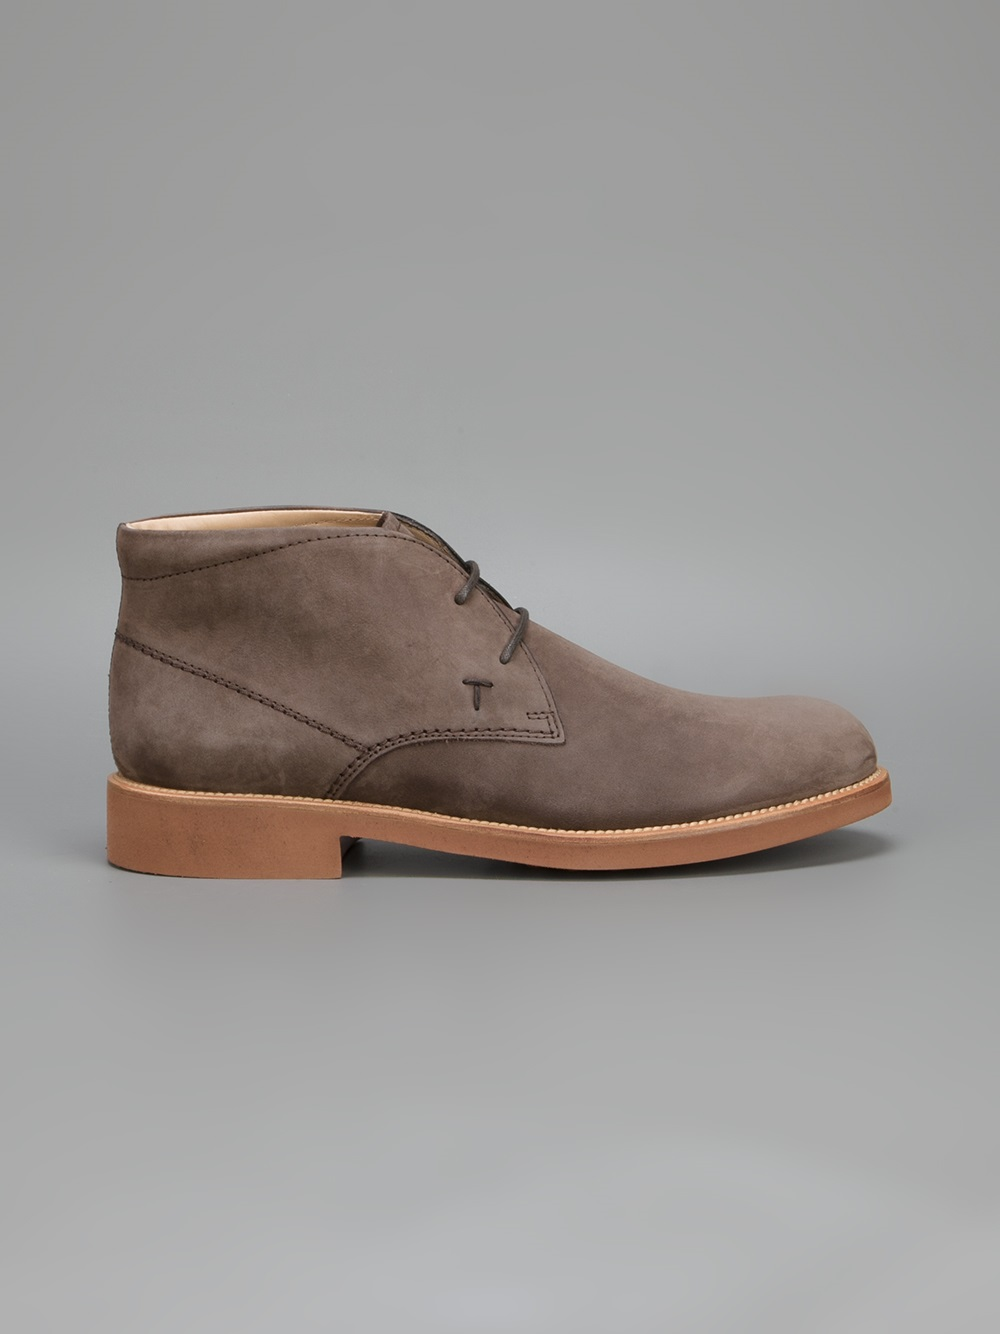 tod 39 s classic desert boot in brown for men lyst. Black Bedroom Furniture Sets. Home Design Ideas